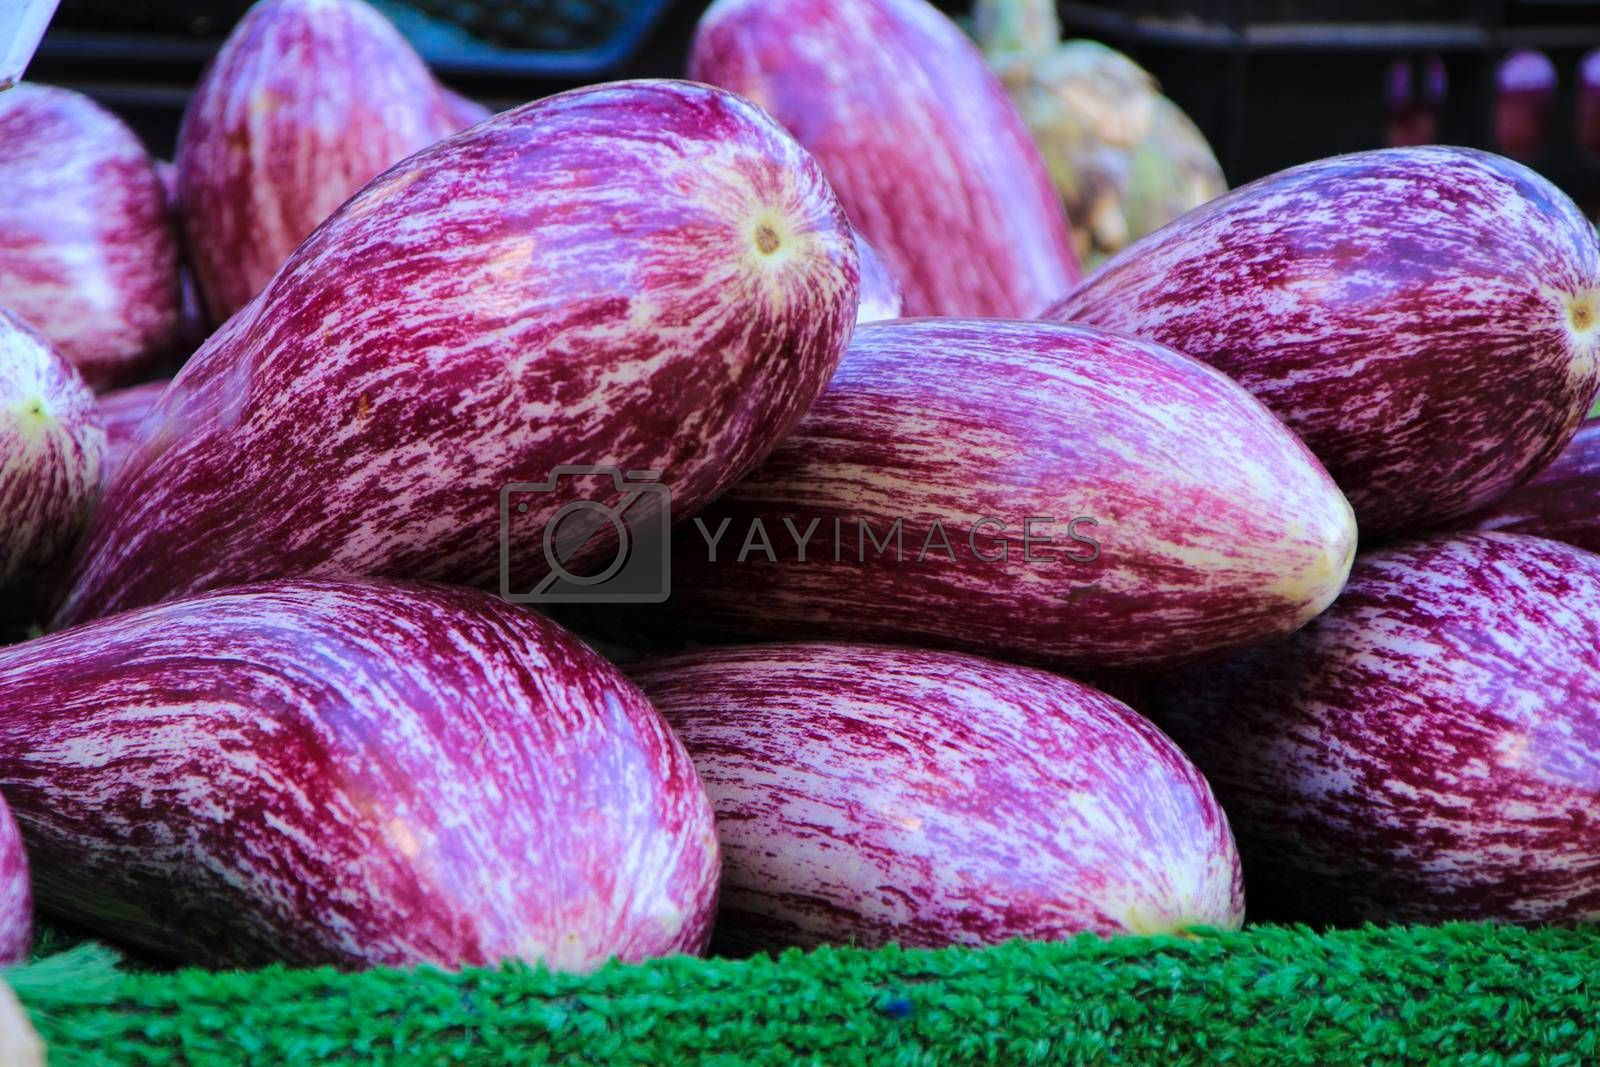 Aubergines for sale at a farmer market stall in Spain